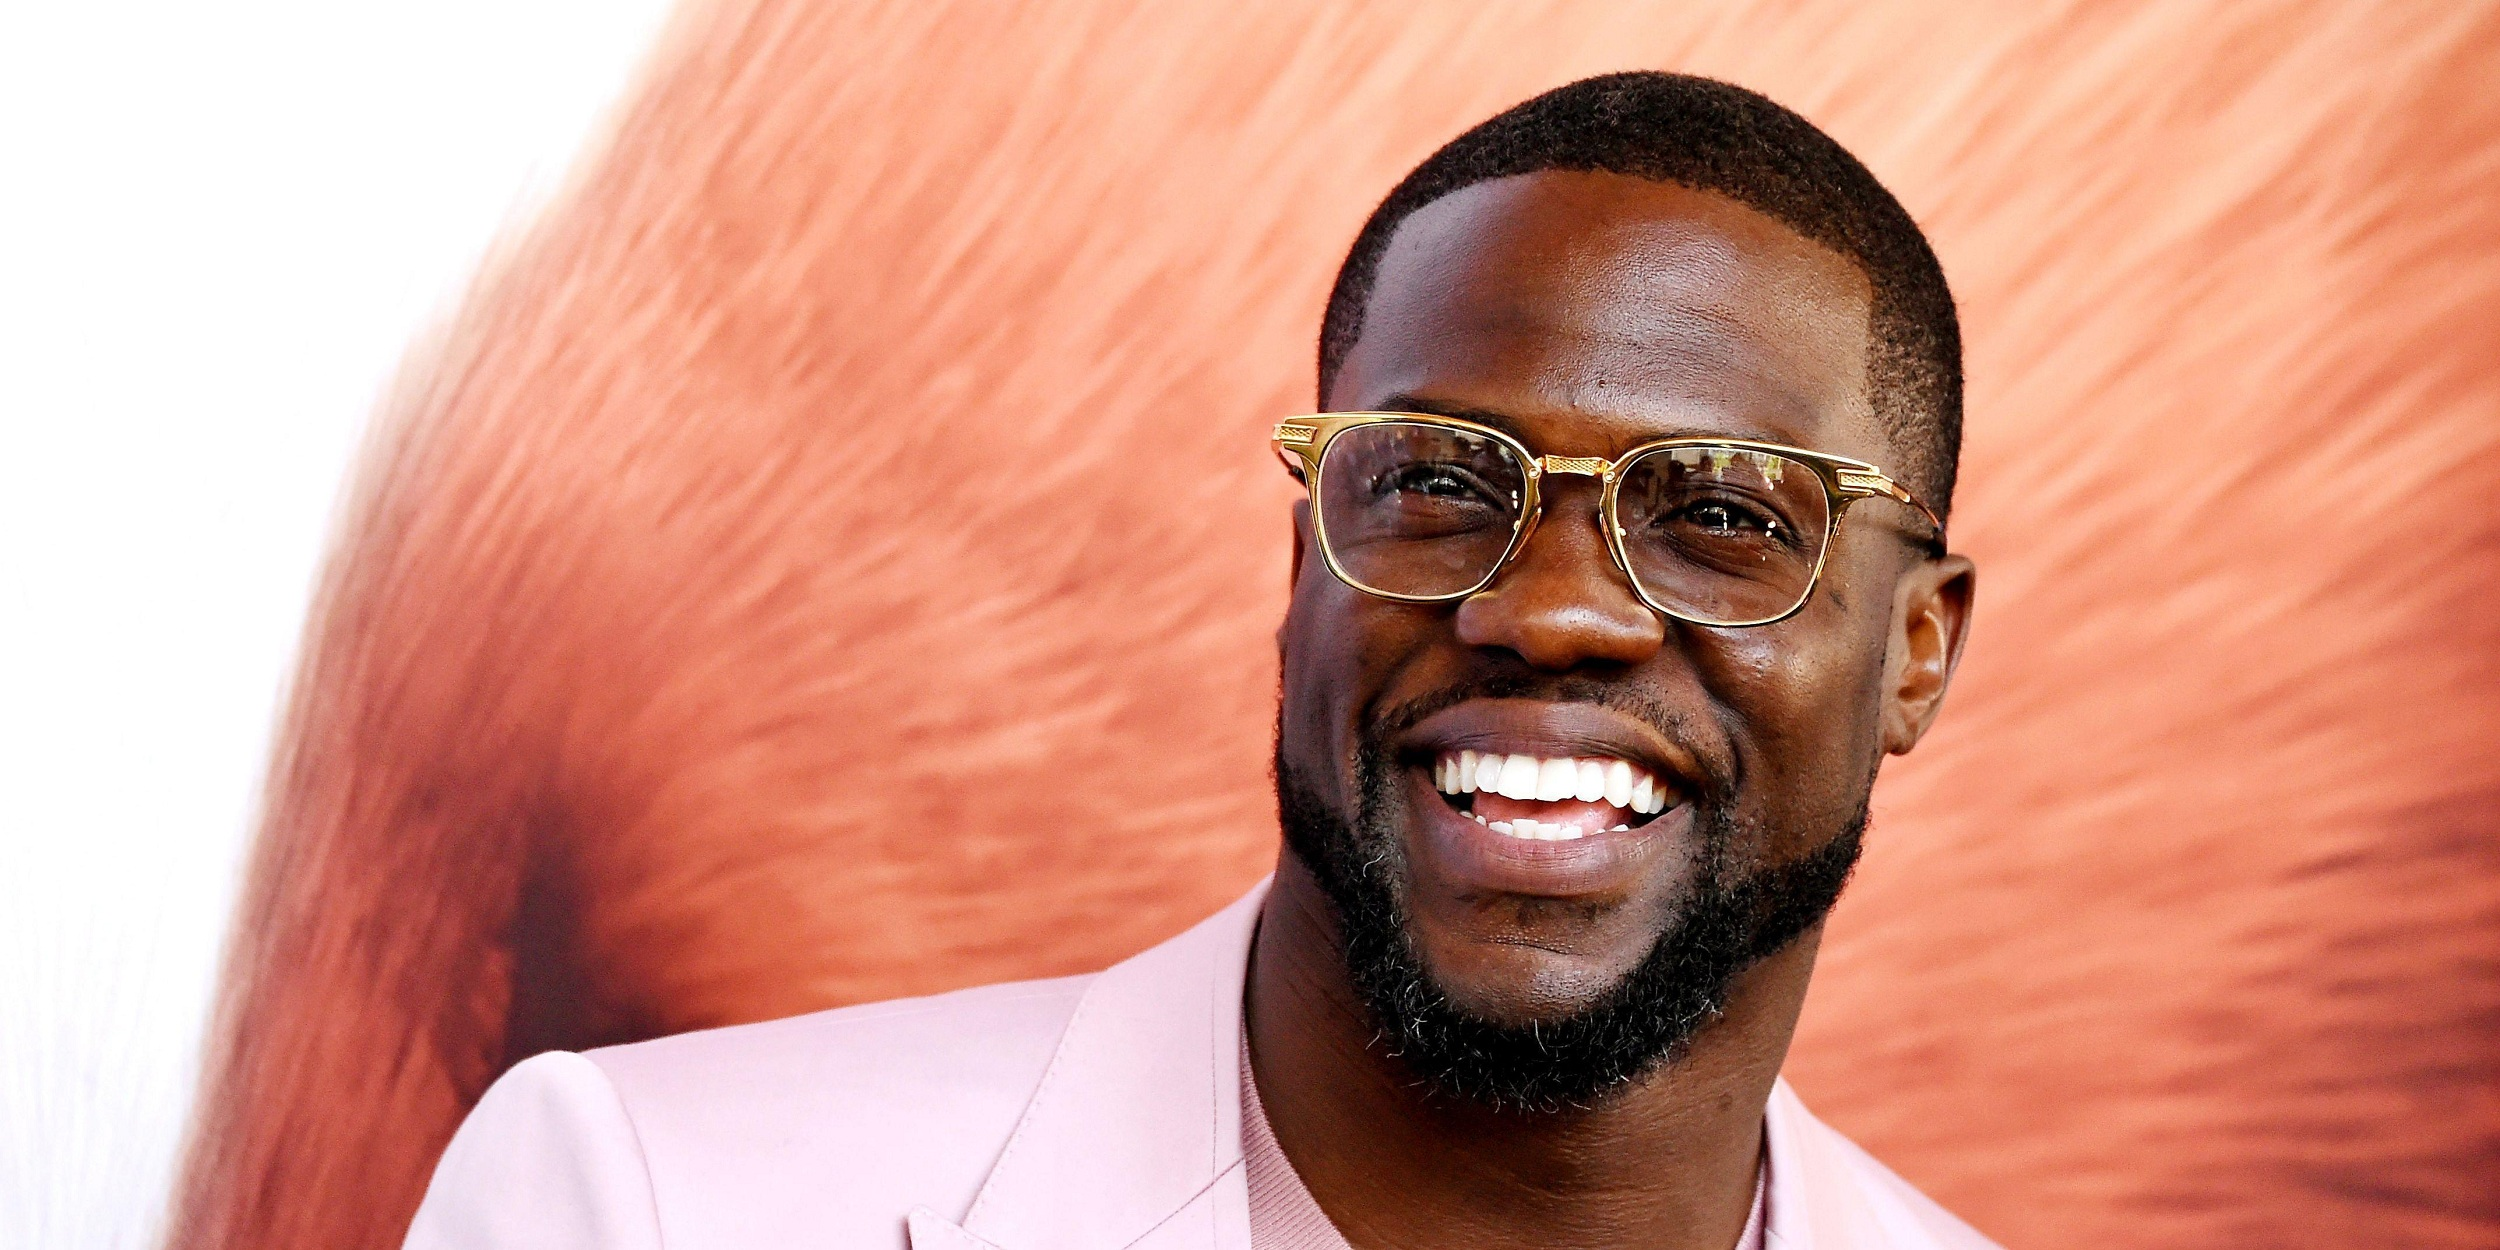 a picture of kevin hart